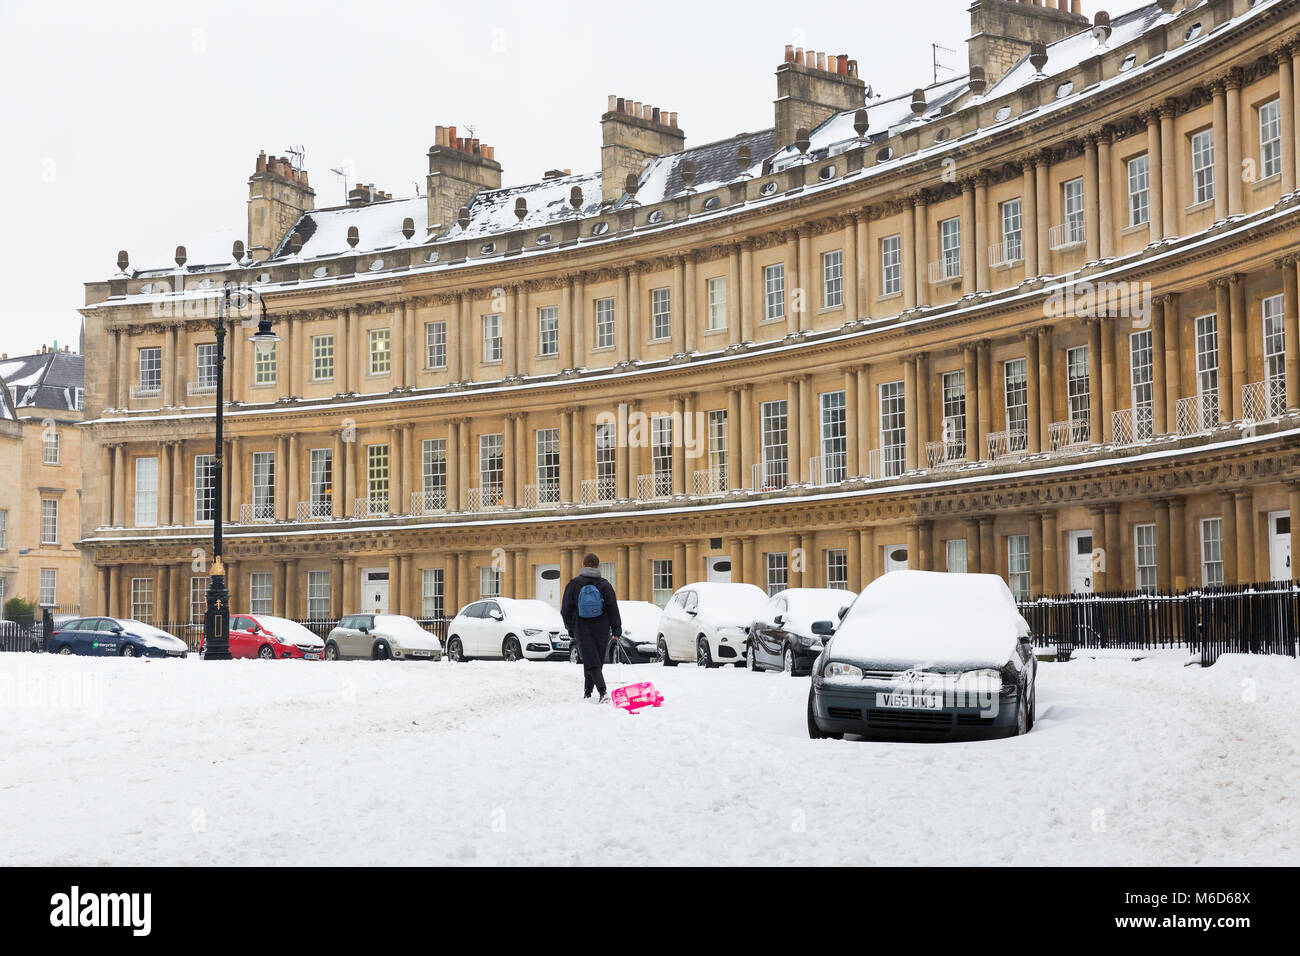 BATH, UK - MARCH 2, 2018 :  A woman drags a sled along the road in snowy conditions at the Circus, a Georgian terraced Stock Photo